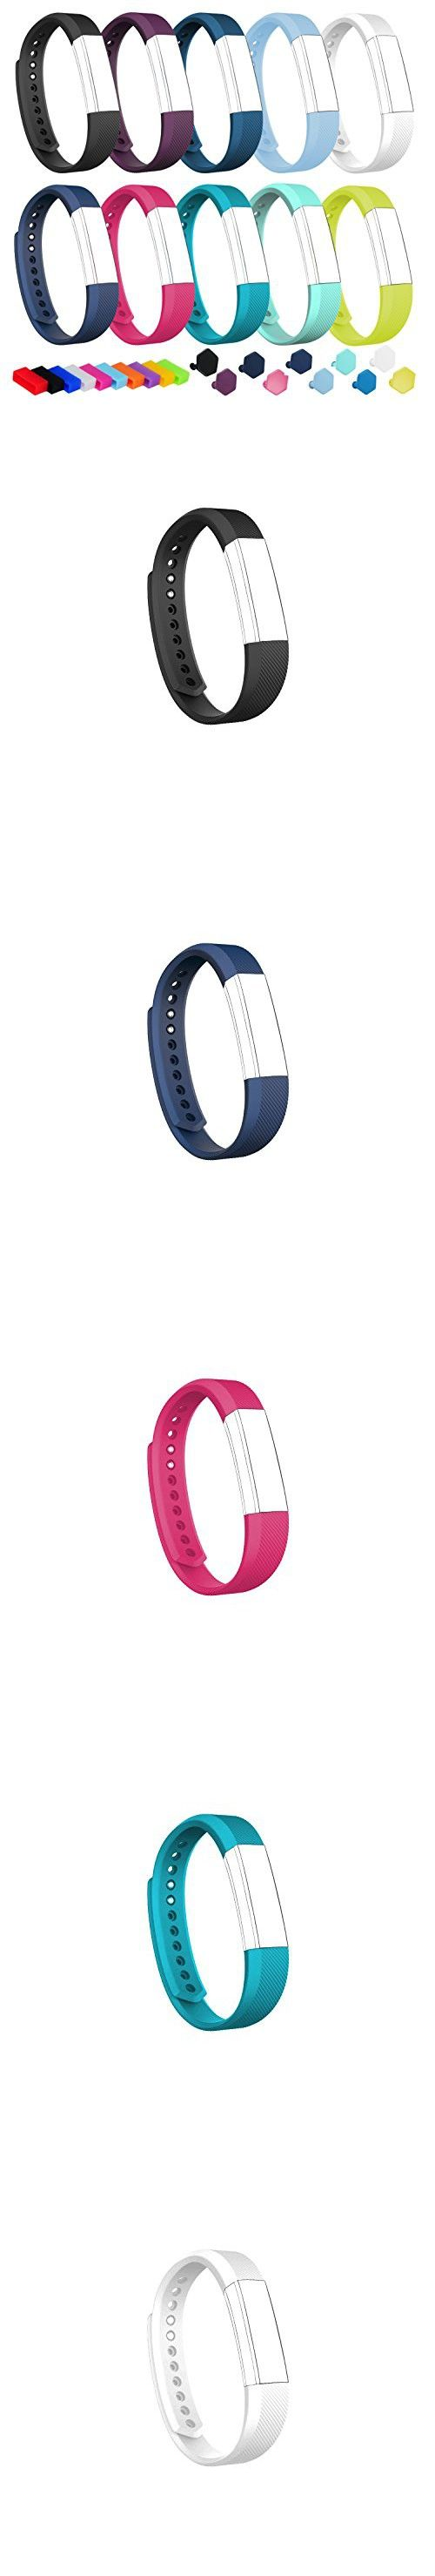 For Fitbit Alta HR and Alta Bands, TreasureMax Replacement Band for Fitbit Alta/ Fitbit Alta HR Wristband/ Fitbit Alta HR Accessory/ Fitbit Alta HR Band